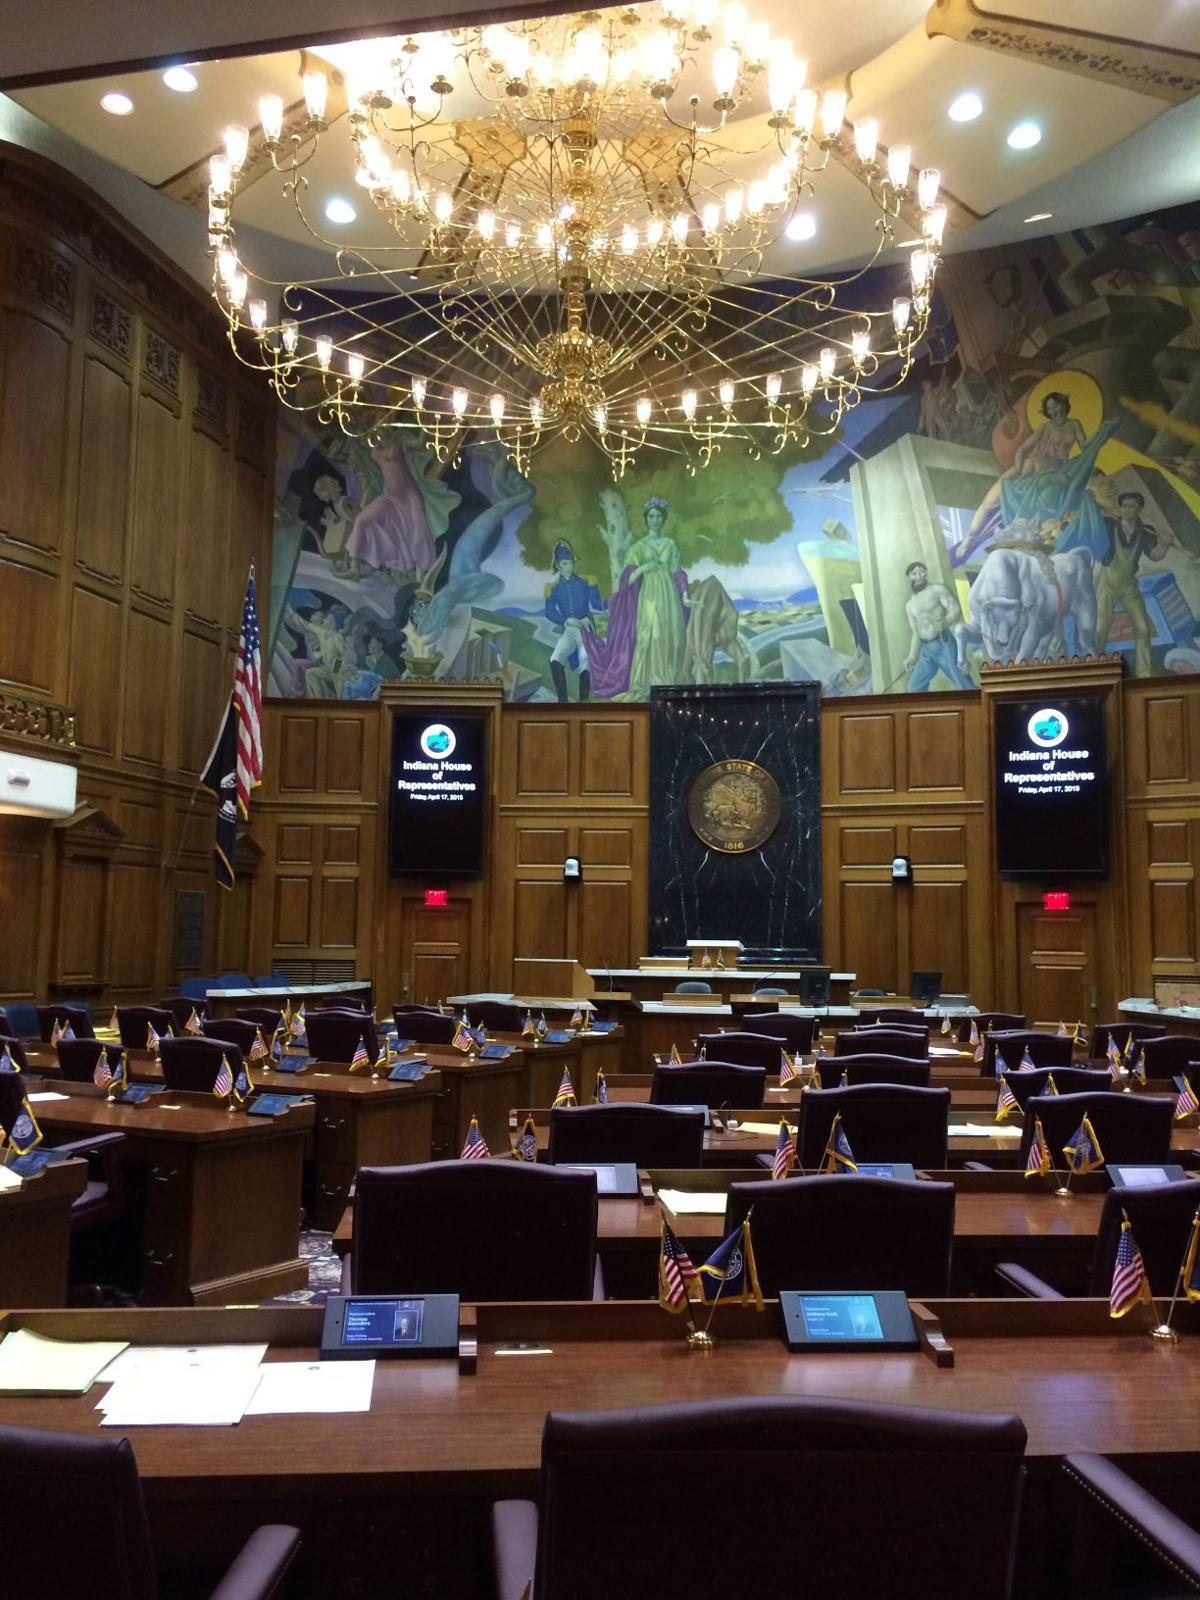 state emergency contact database wins legislative approval